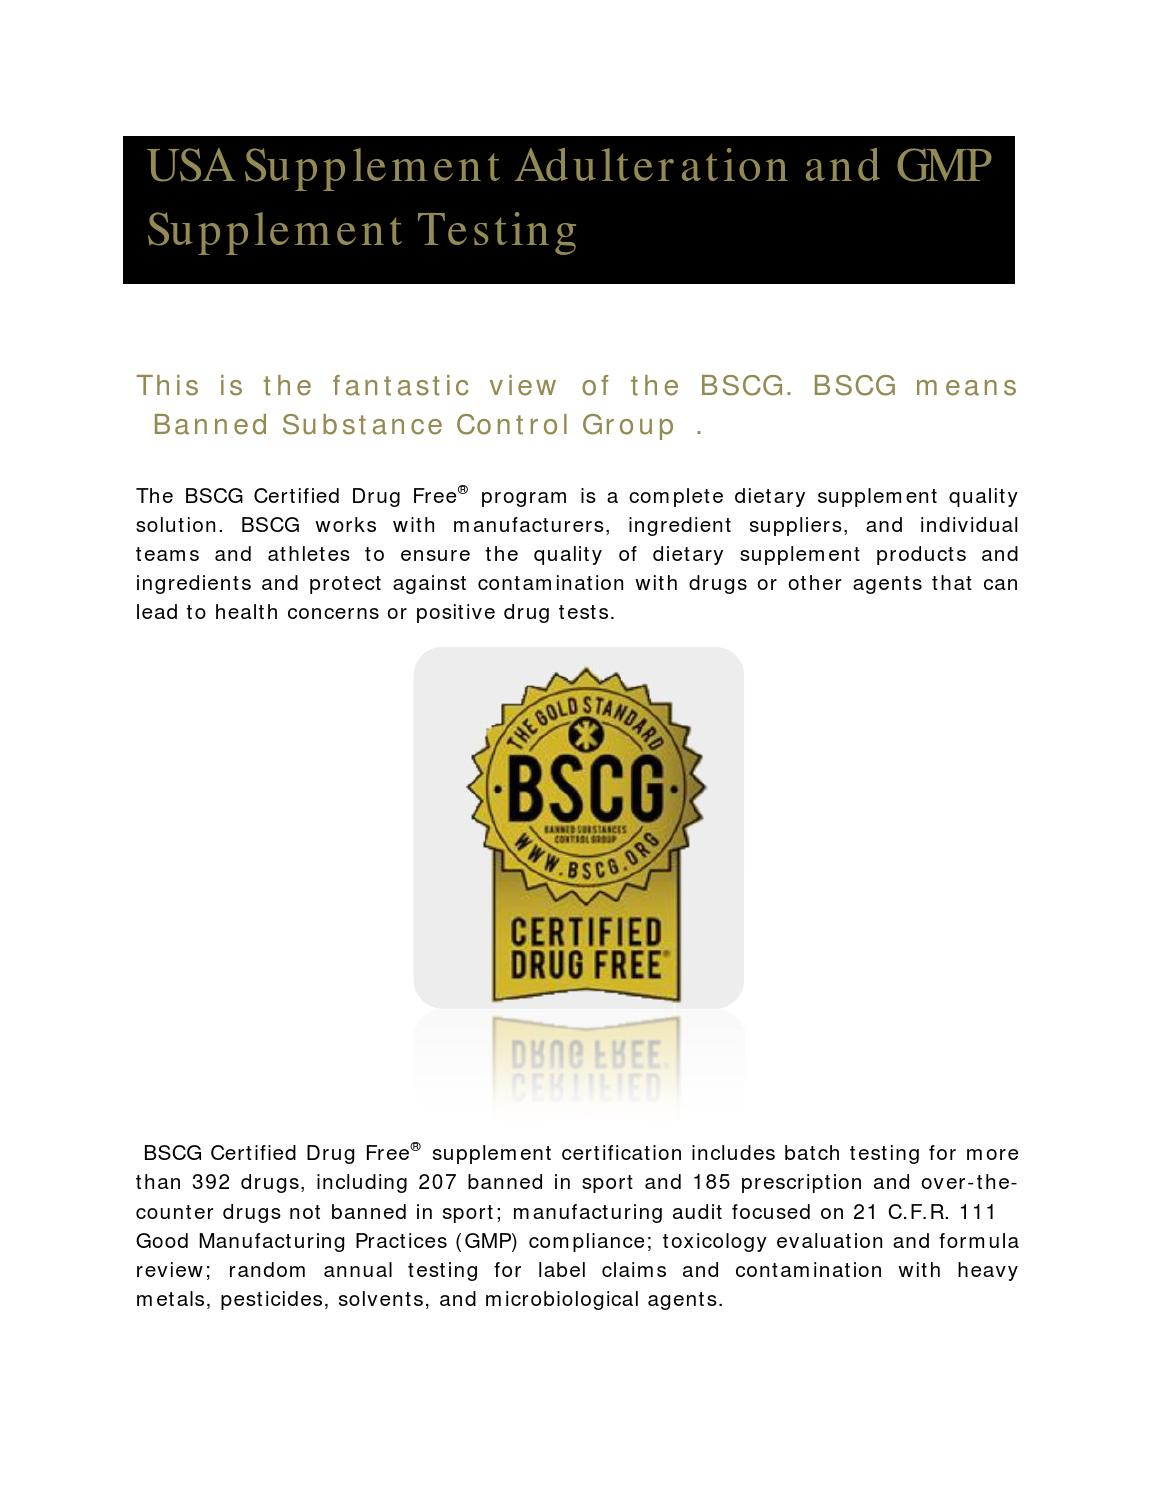 Supplement Adulteration And Gmp Supplement Testing By Bscgcertified